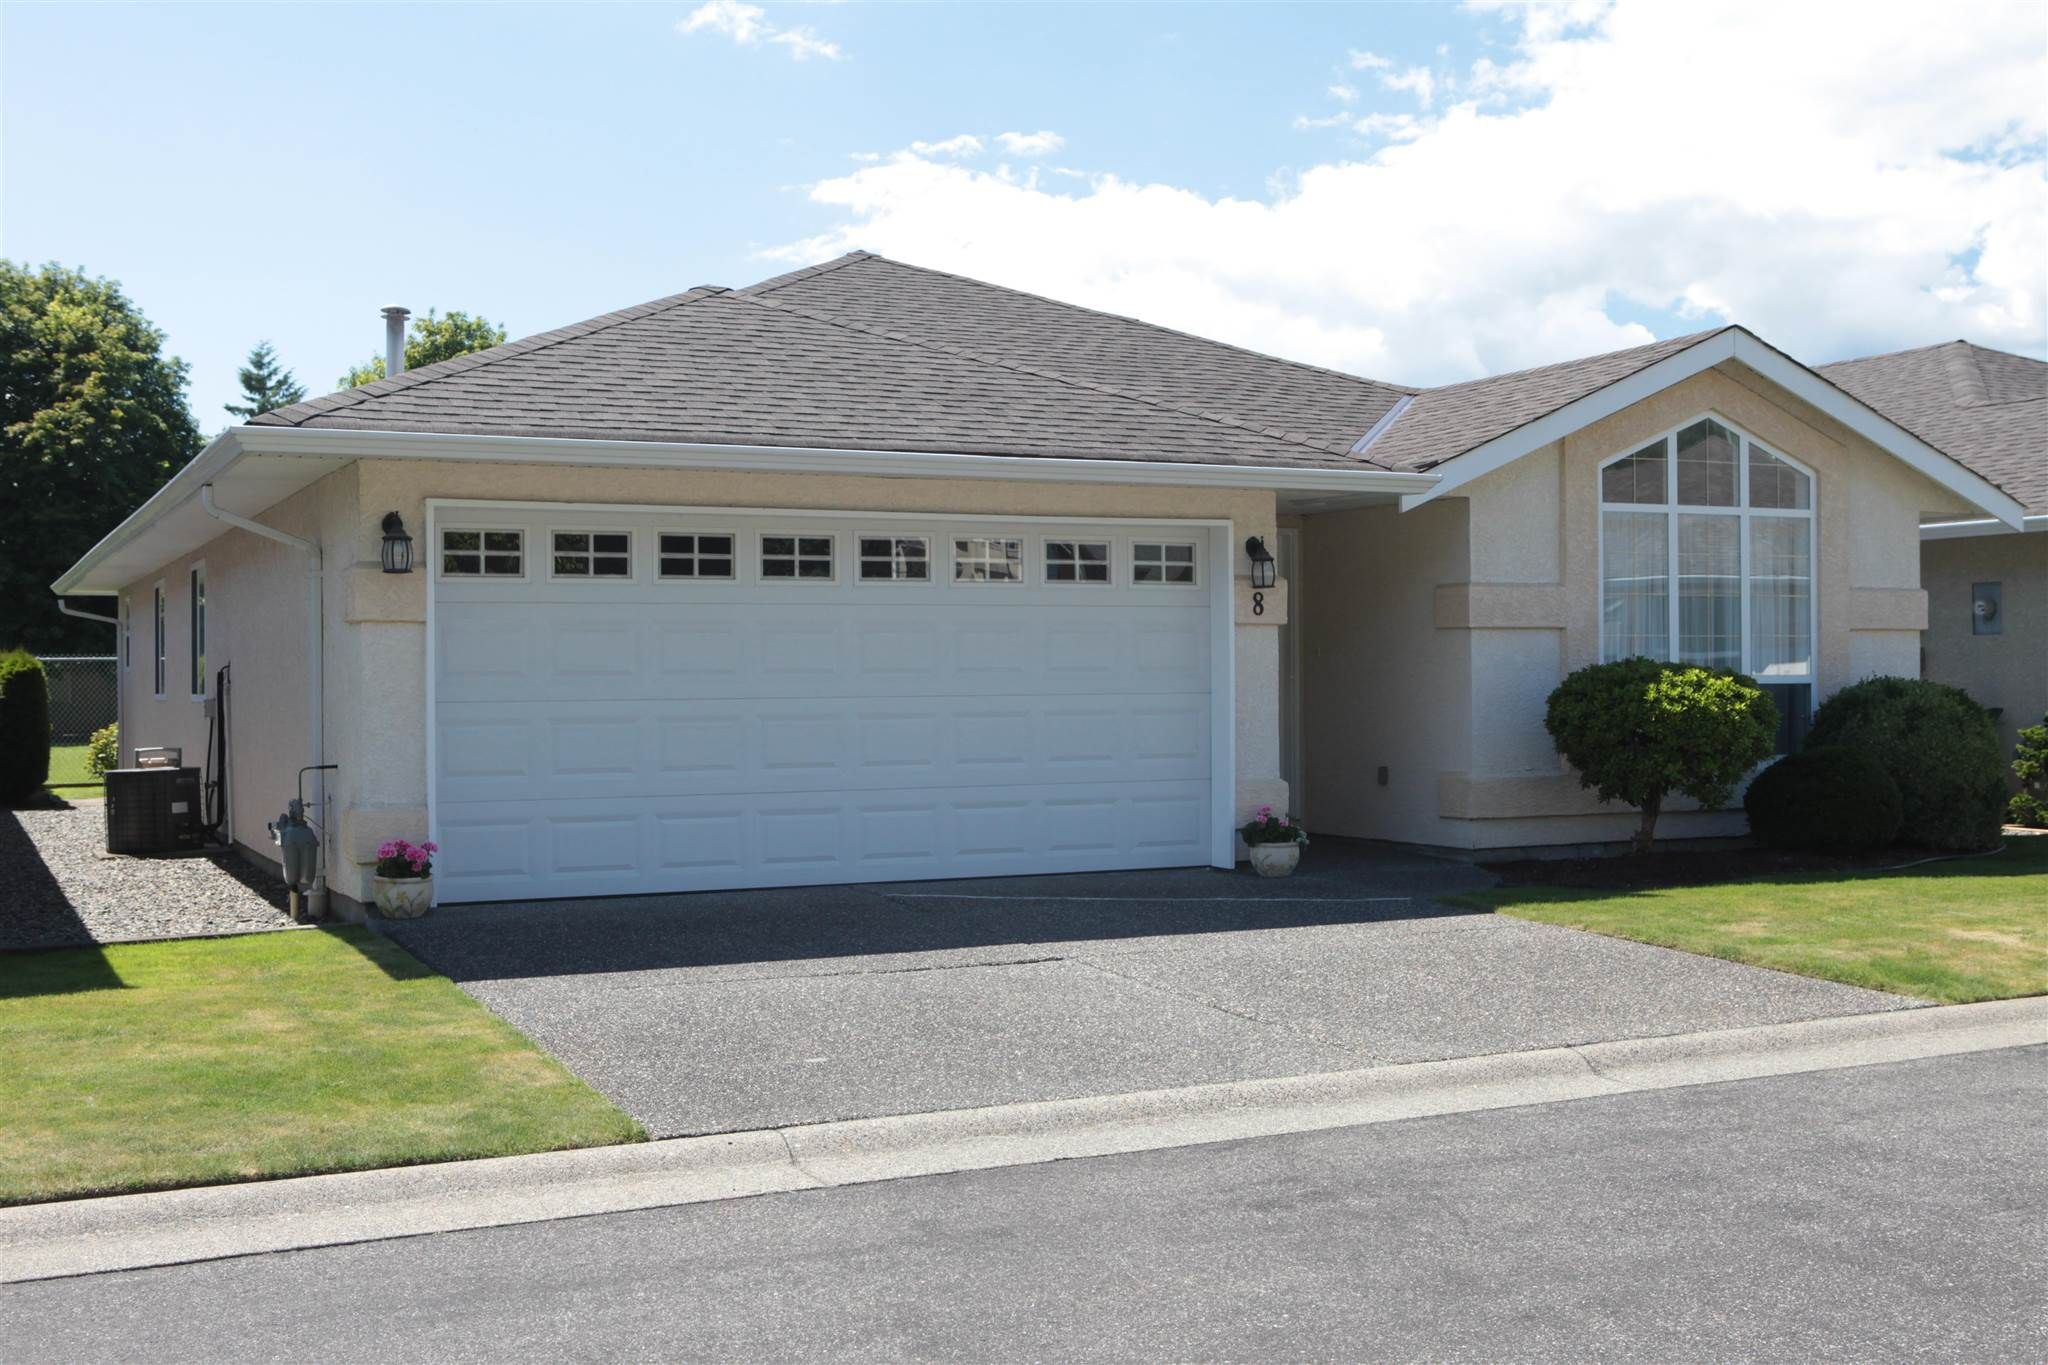 """Main Photo: 8 9921 QUARRY Road in Chilliwack: Chilliwack N Yale-Well House for sale in """"BRAESIDE ESTATES"""" : MLS®# R2593885"""